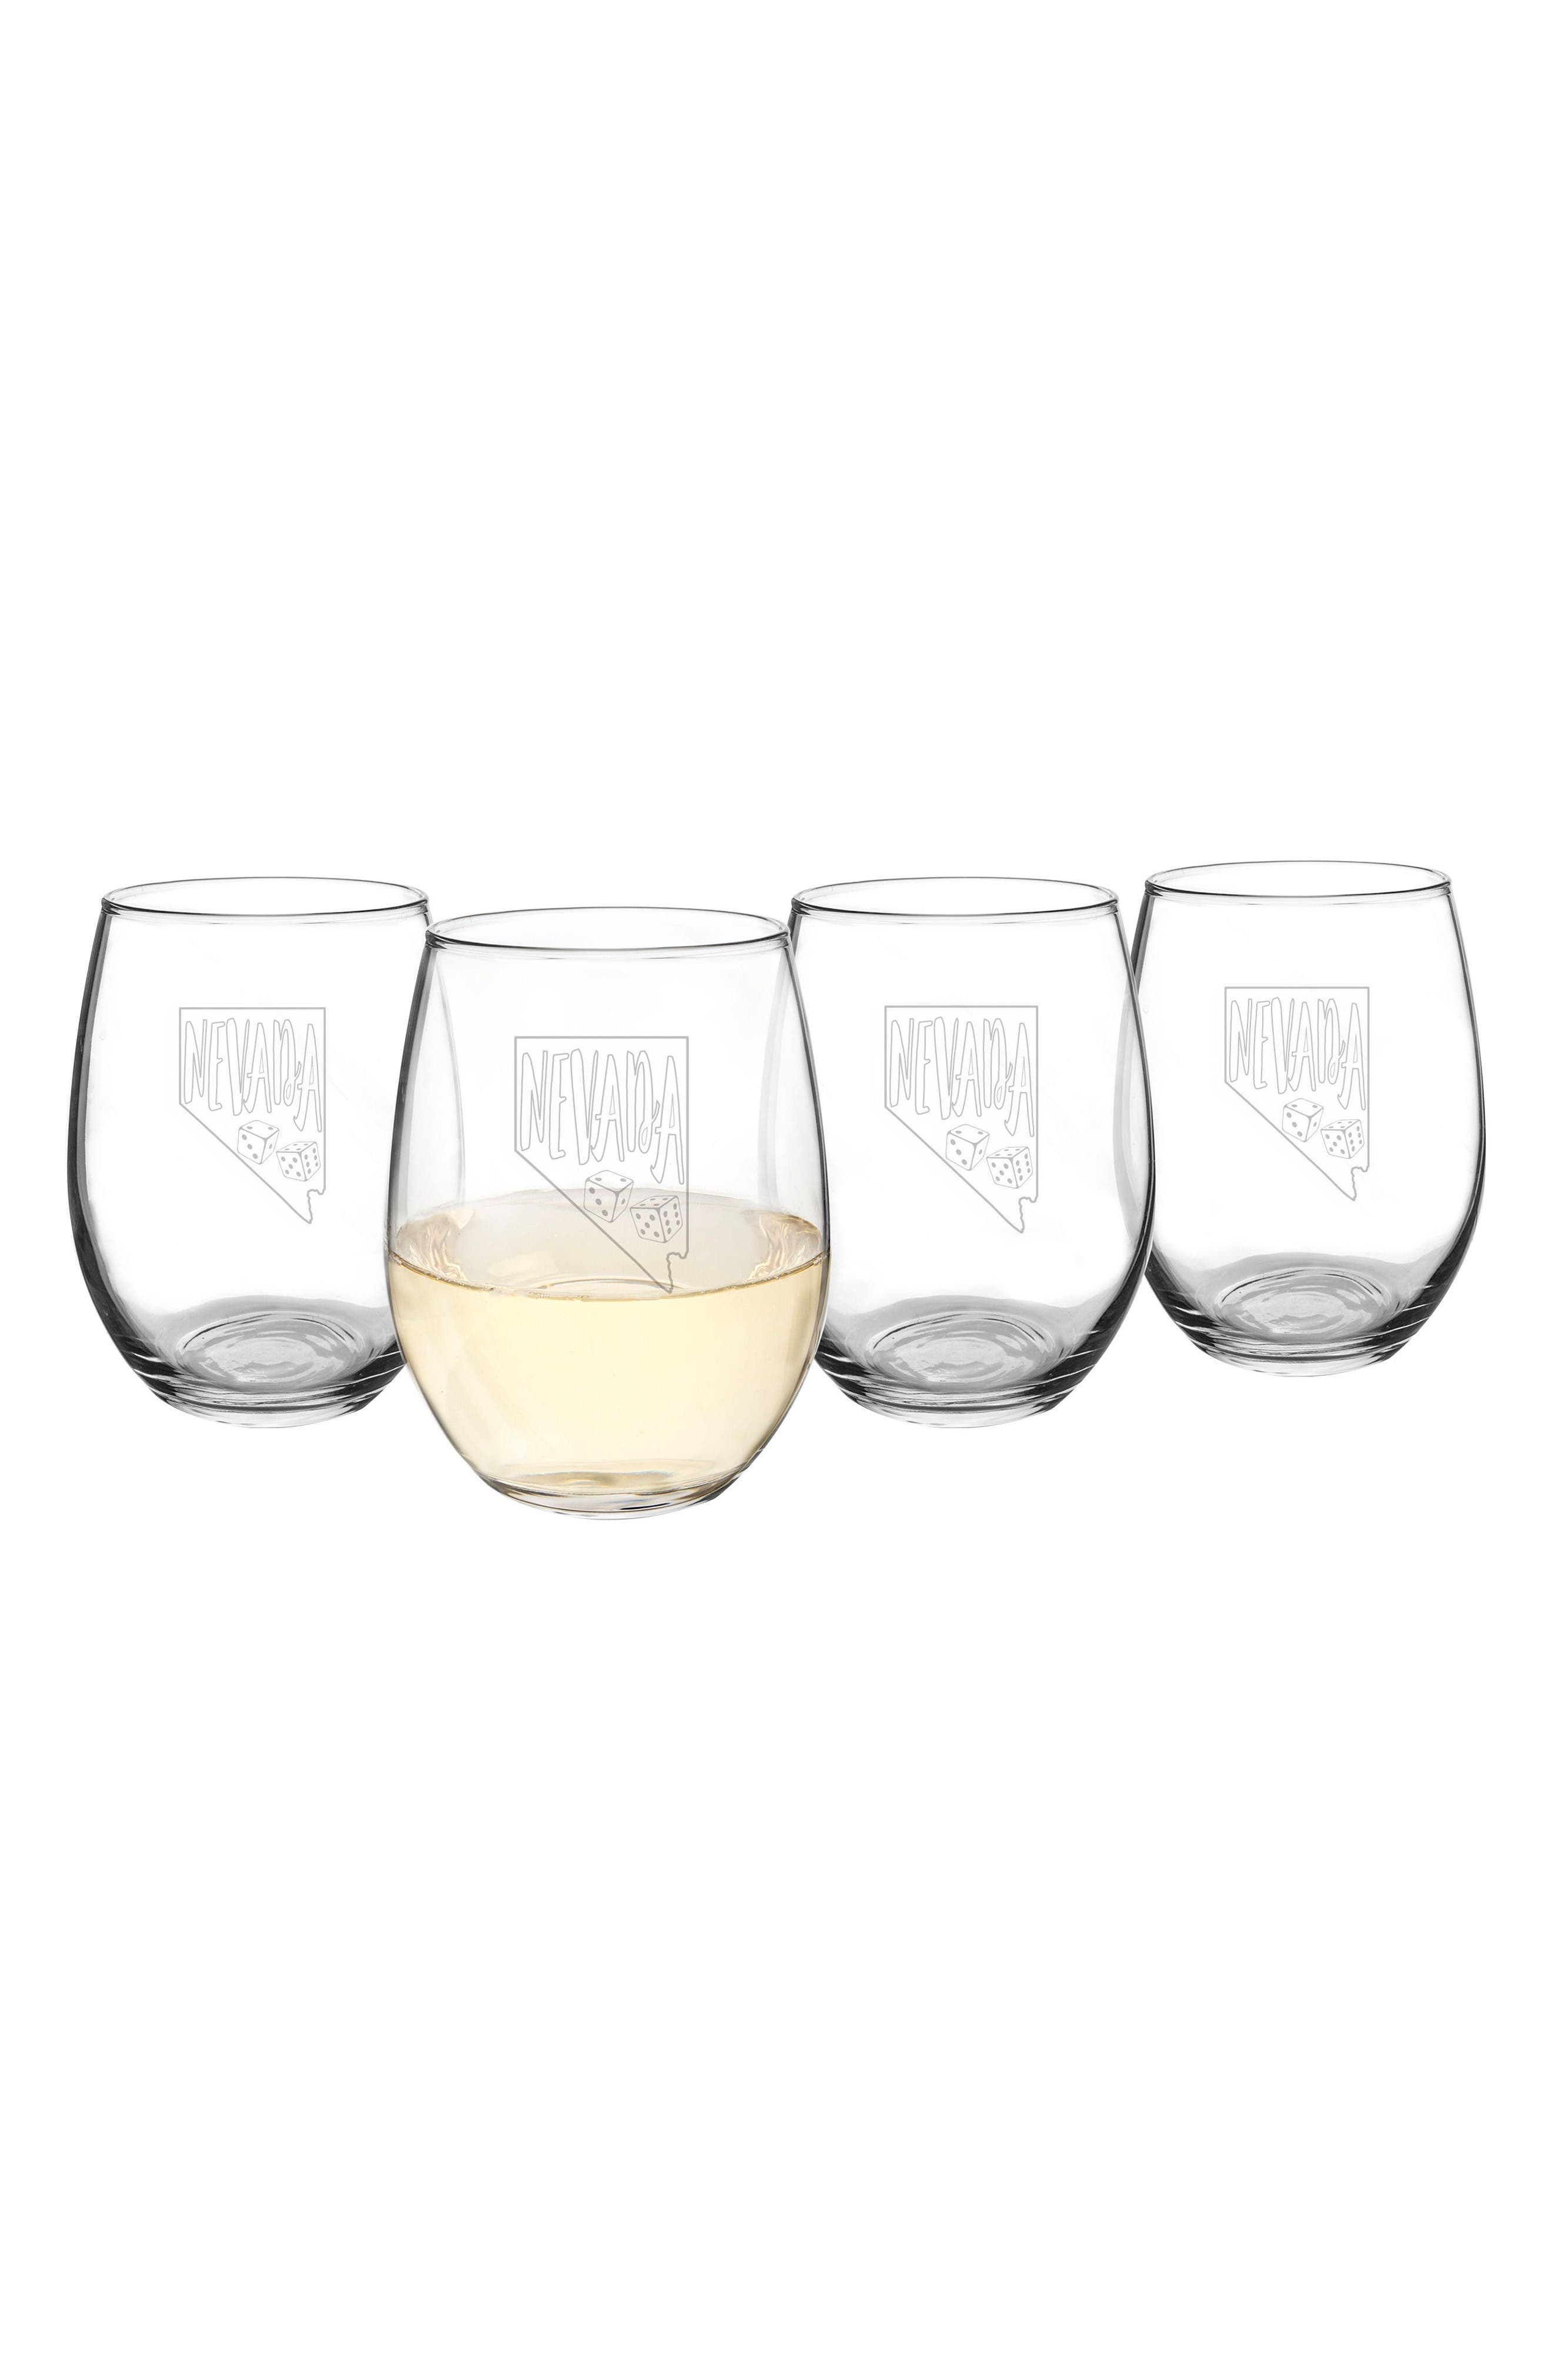 Main Image - Cathy's Concepts State Set of 4 Stemless Wine Glasses